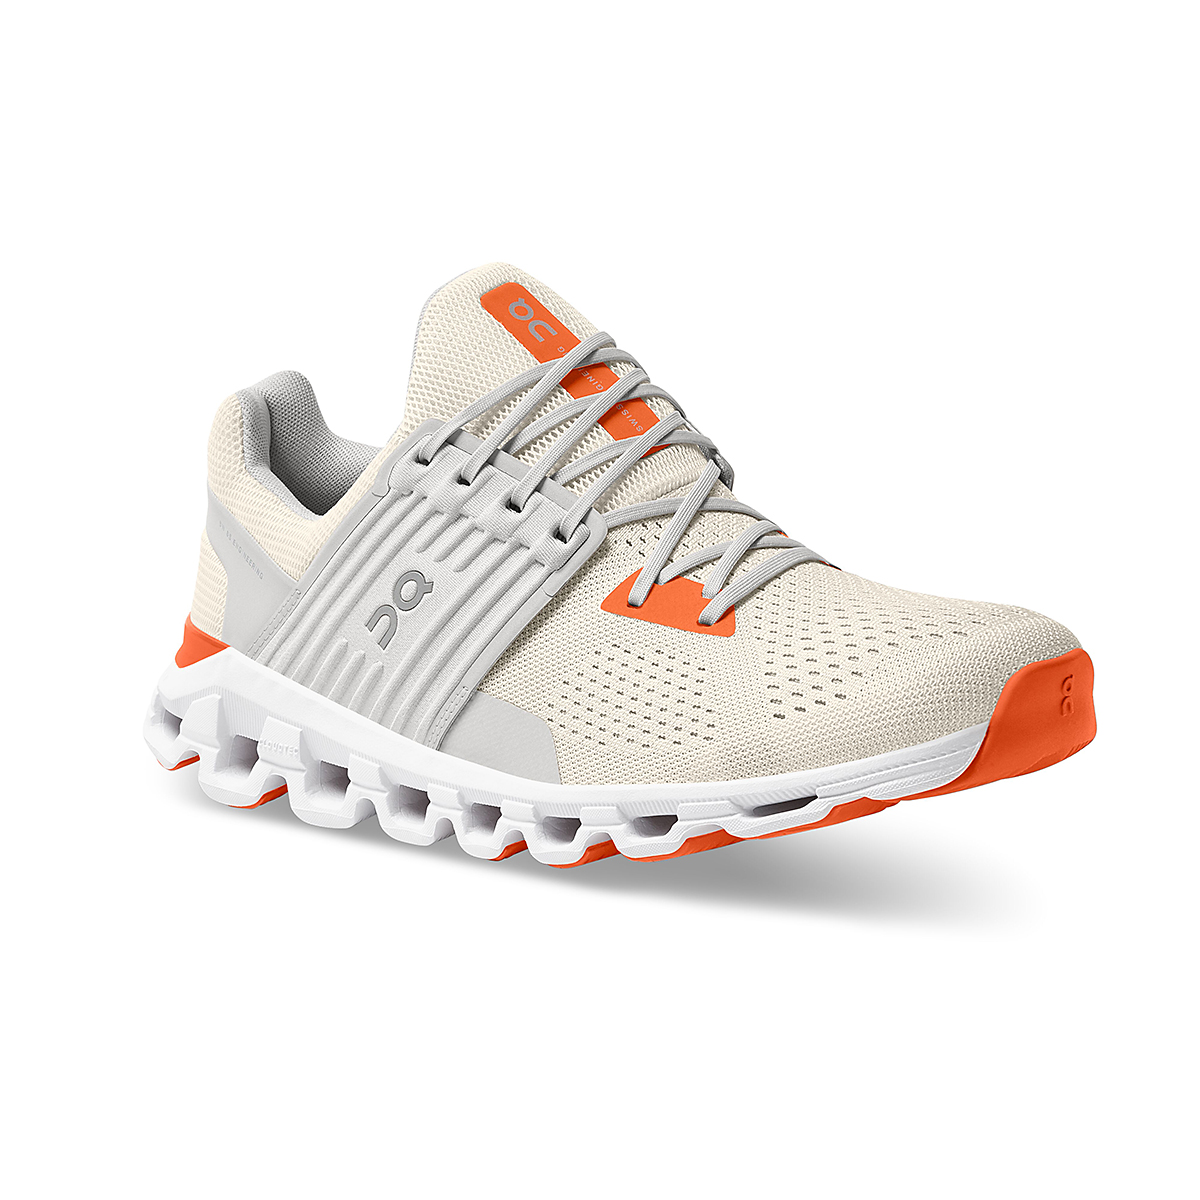 Men's On Cloudswift 2.0 Running Shoe - Color: White | Flame - Size: 7 - Width: Regular, White | Flame, large, image 3